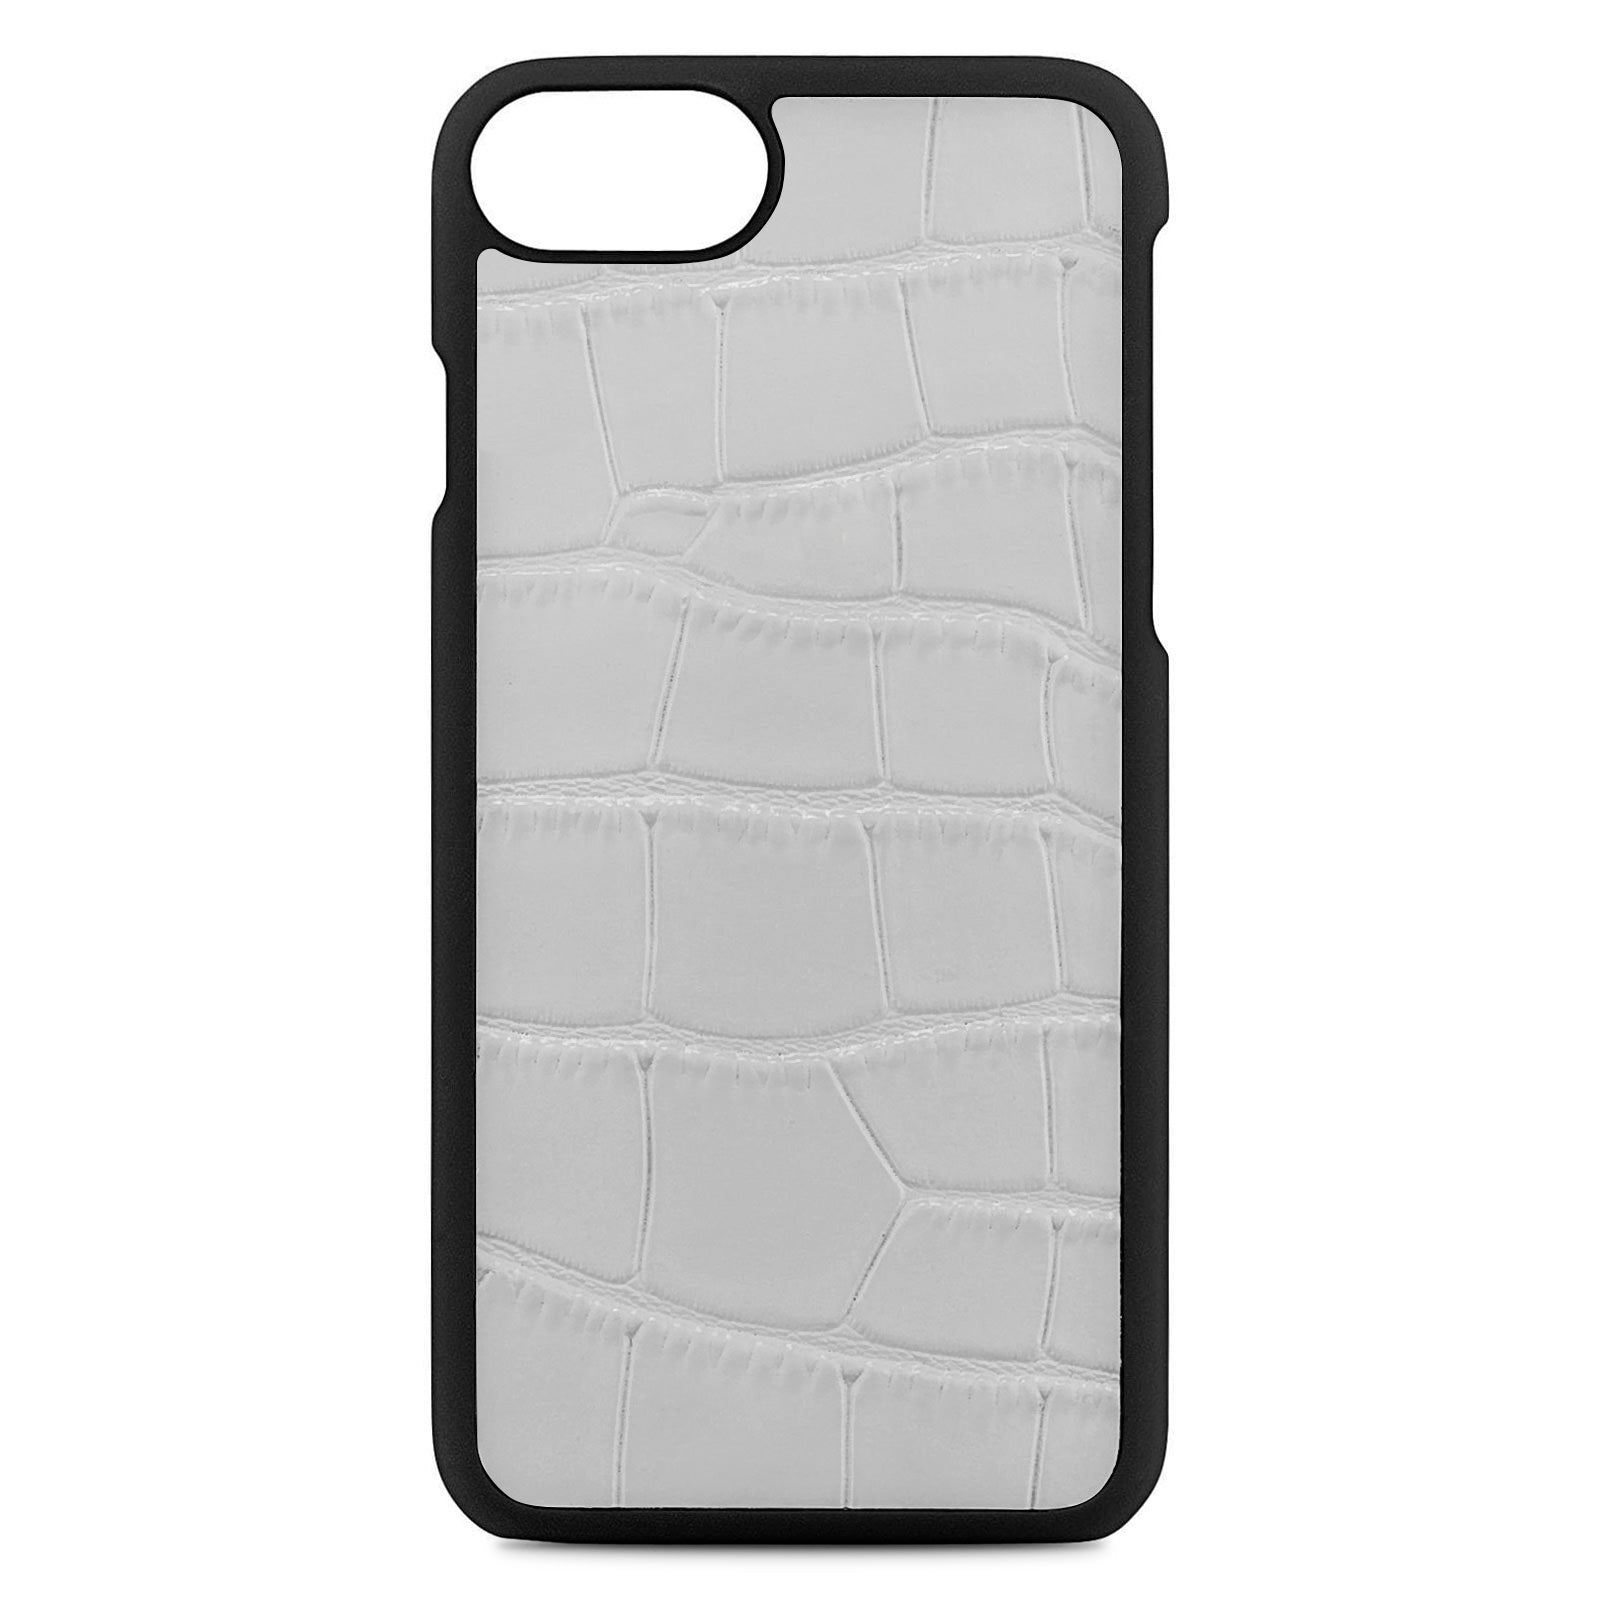 Blank Personalised Grey Croc Leather iPhone Case